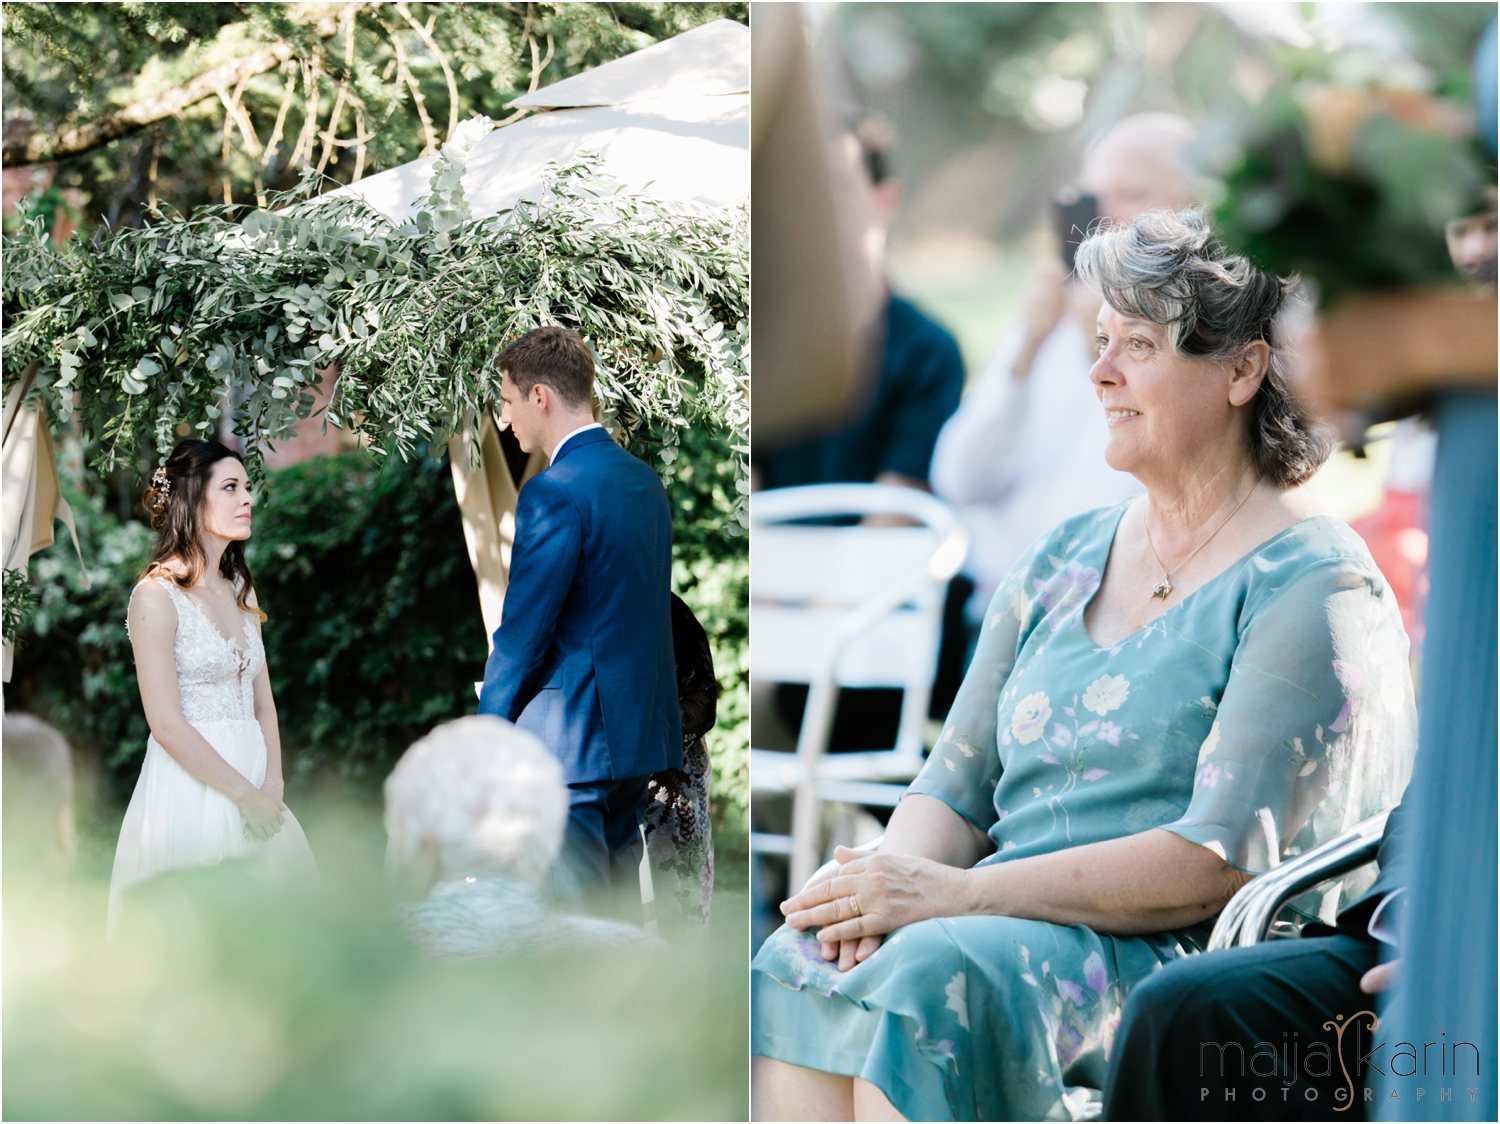 Castelvecchi-Tuscany-Wedding-Maija-Karin-Photography_0029.jpg